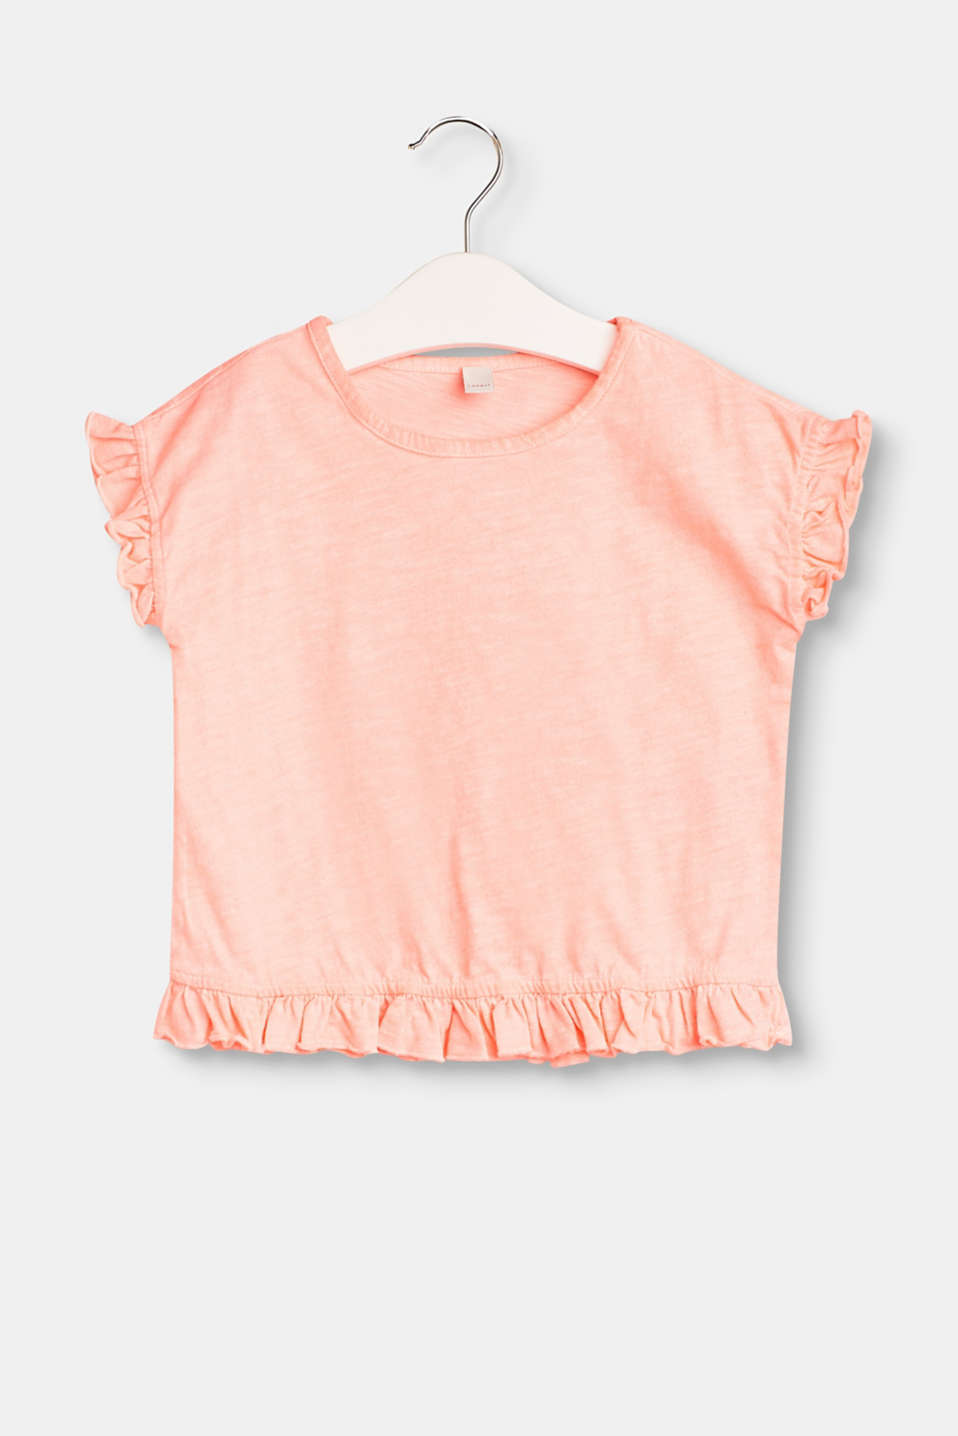 Esprit - Casual T-shirt with frills, 100% cotton